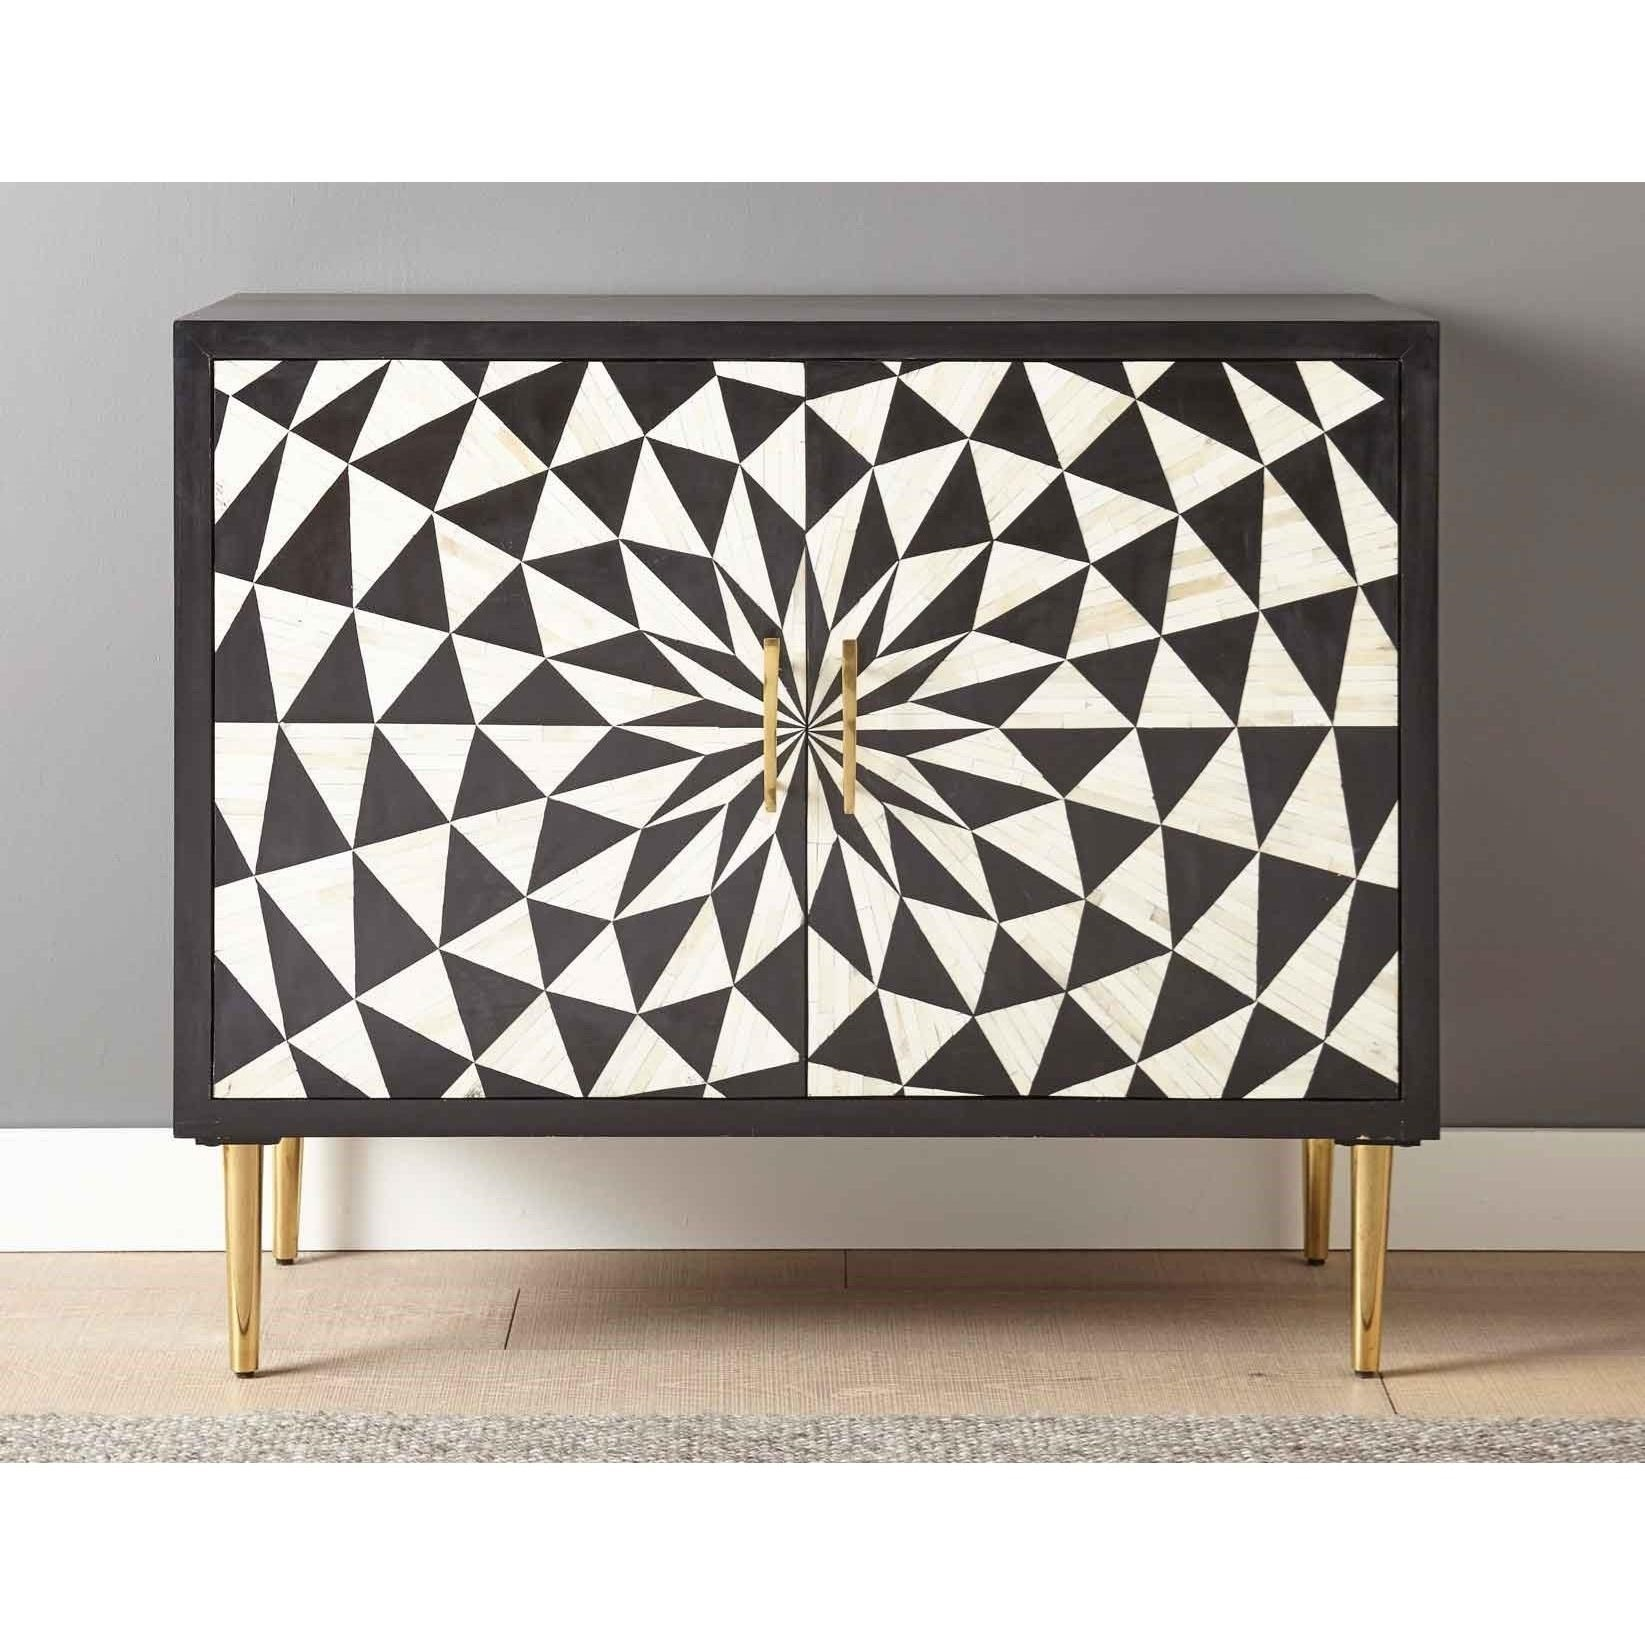 Benzara Accent Cabinet by Steve Silver at Standard Furniture